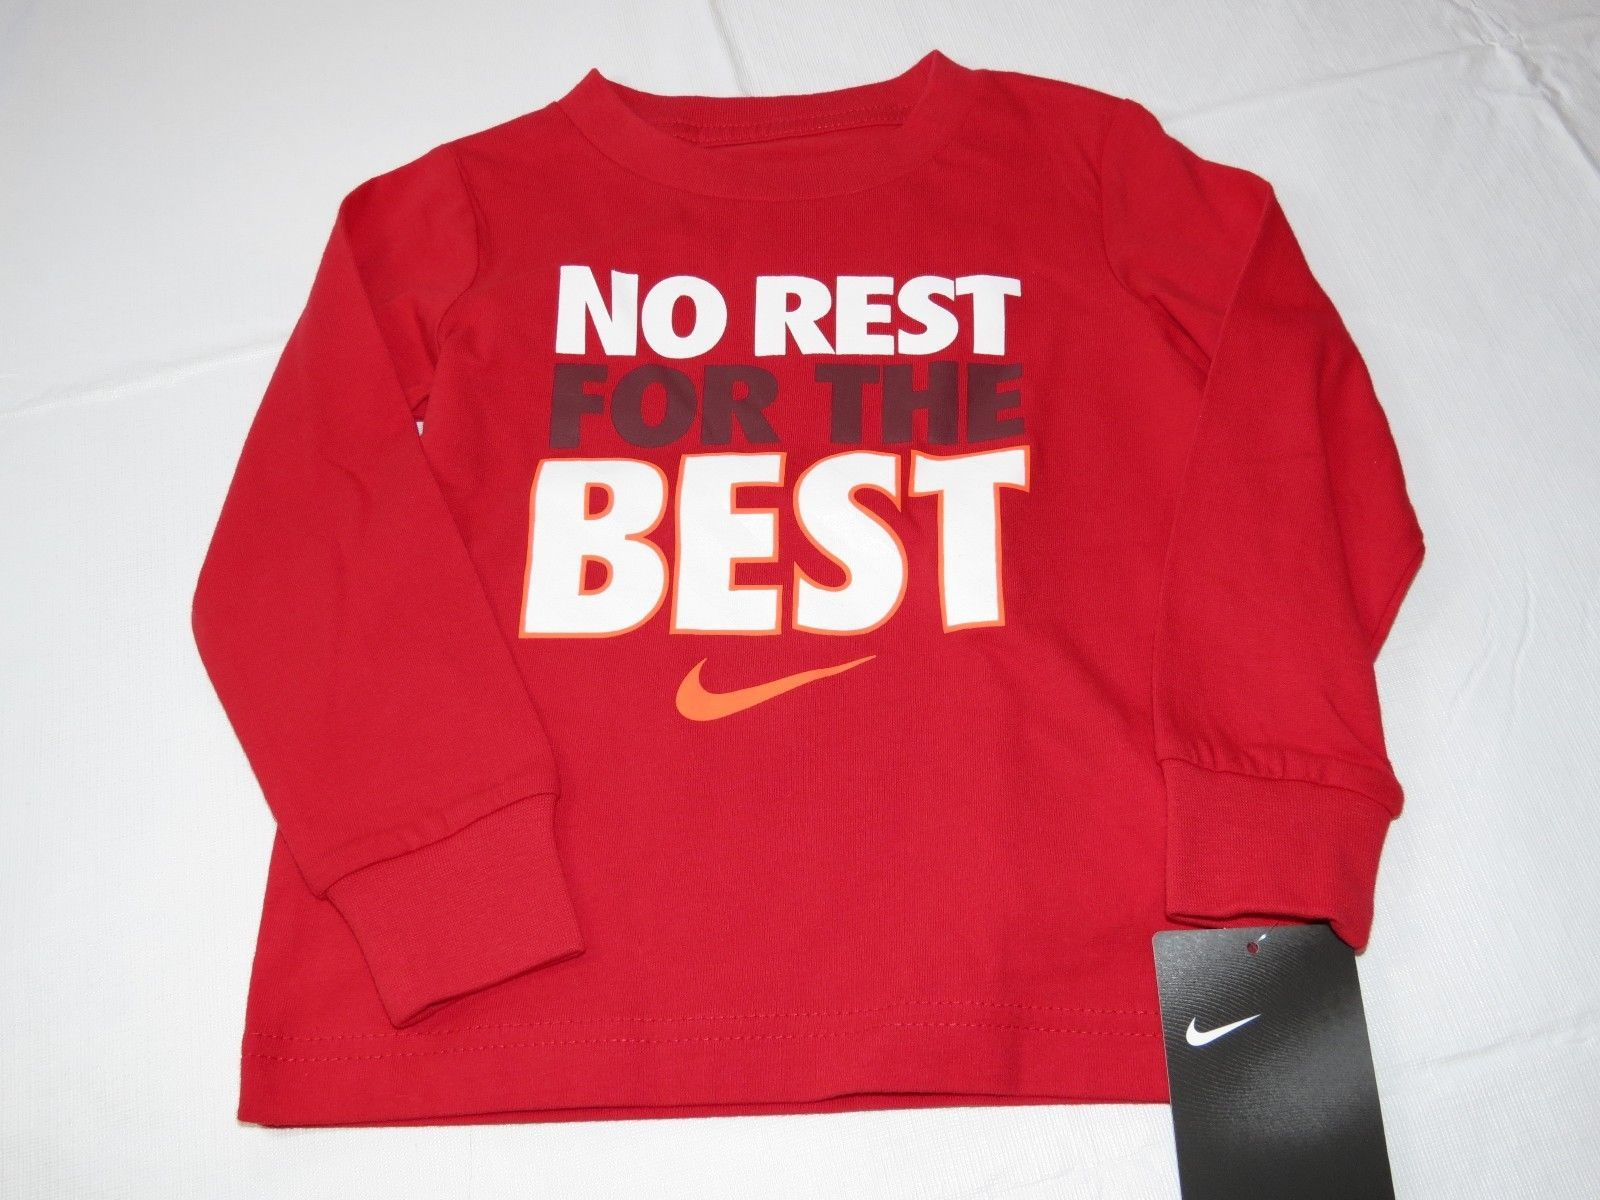 Boys Youth Nike The Nike Tee 4 XS Athletic Cut long sleeve shirt 8MC441 U10 red